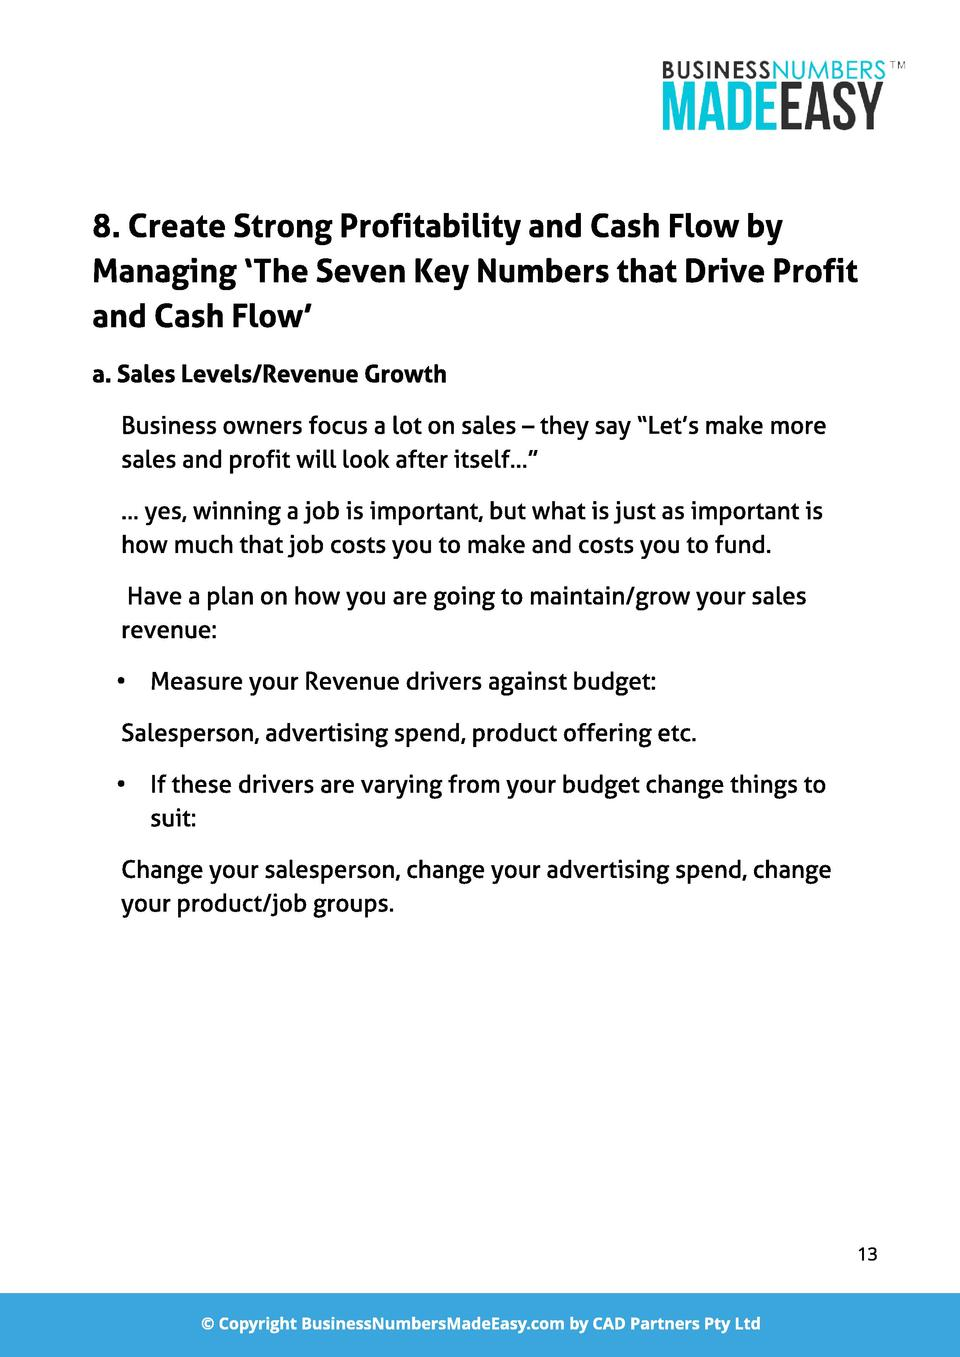 8. Creat e St rong Prof it abil it y and Cash Fl ow by Managing  The Seven Key Numbers t hat Drive Prof it and Cash Fl ow ...